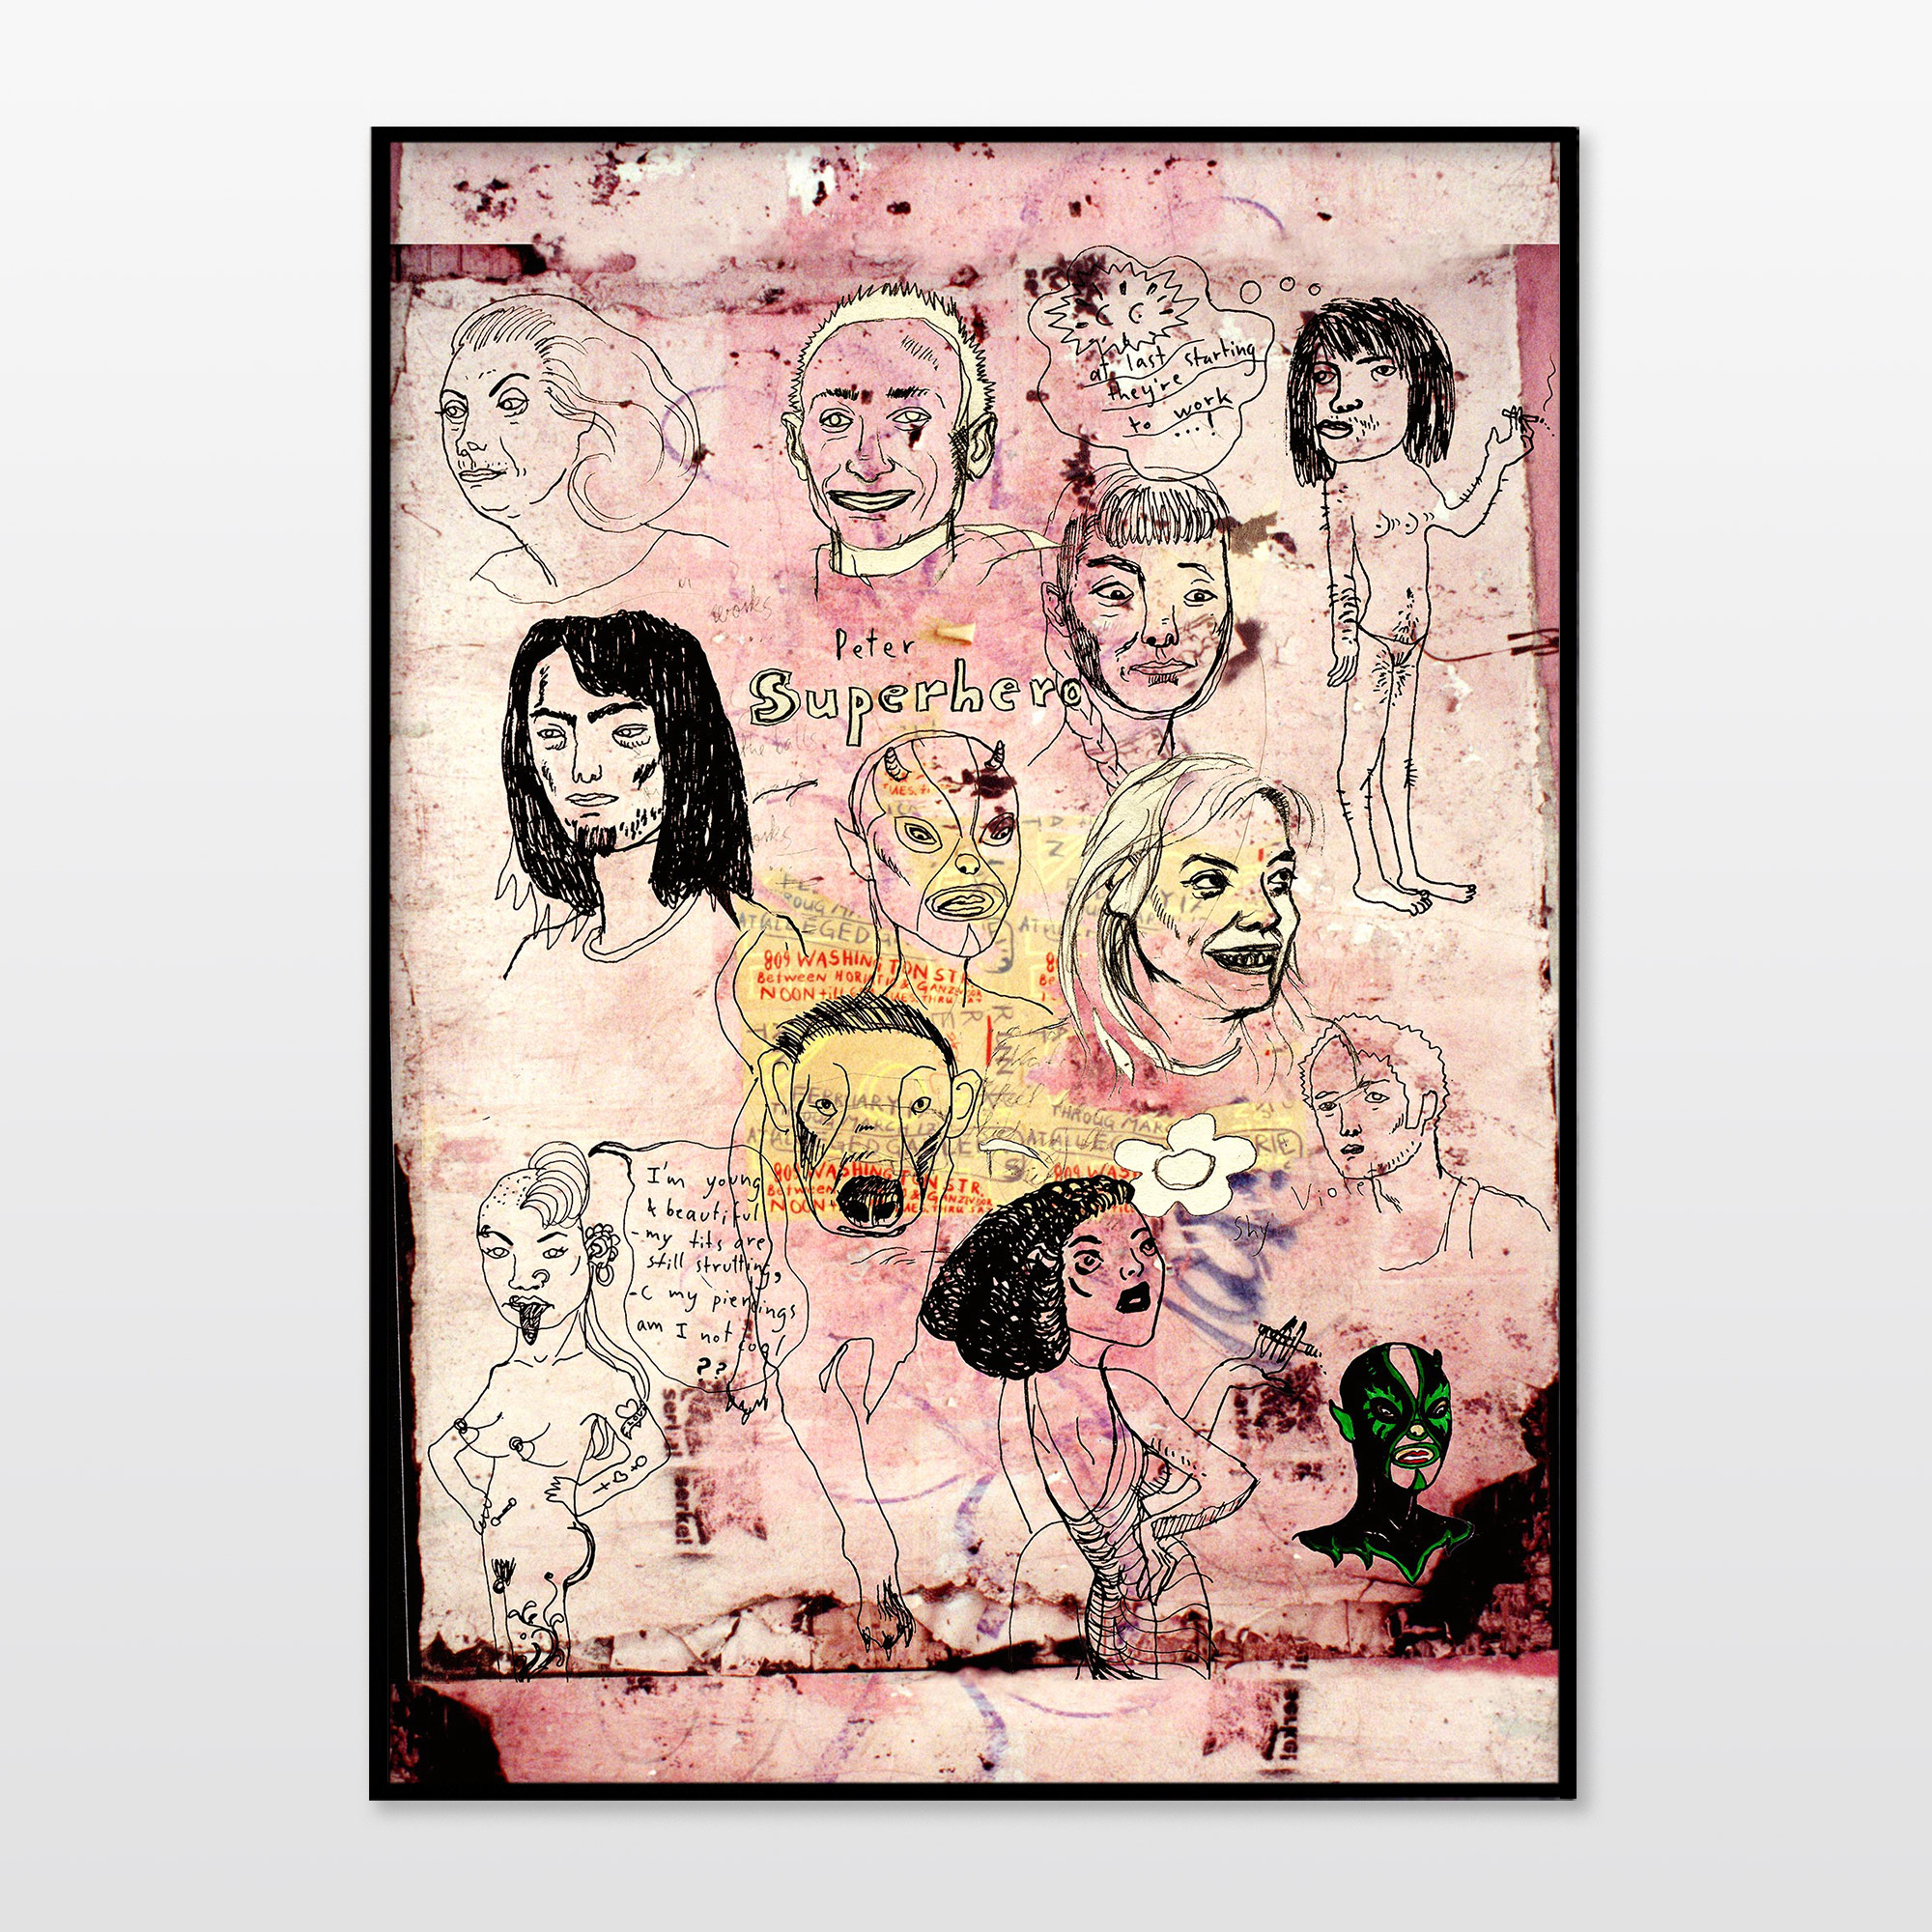 posters-prints, giclee-print, figurative, portraiture, bodies, humor, pets, black, pink, ink, paper, amusing, contemporary-art, danish, decorative, design, dogs, faces, interior, interior-design, men, modern, modern-art, nordic, scandinavien, Buy original high quality art. Paintings, drawings, limited edition prints & posters by talented artists.